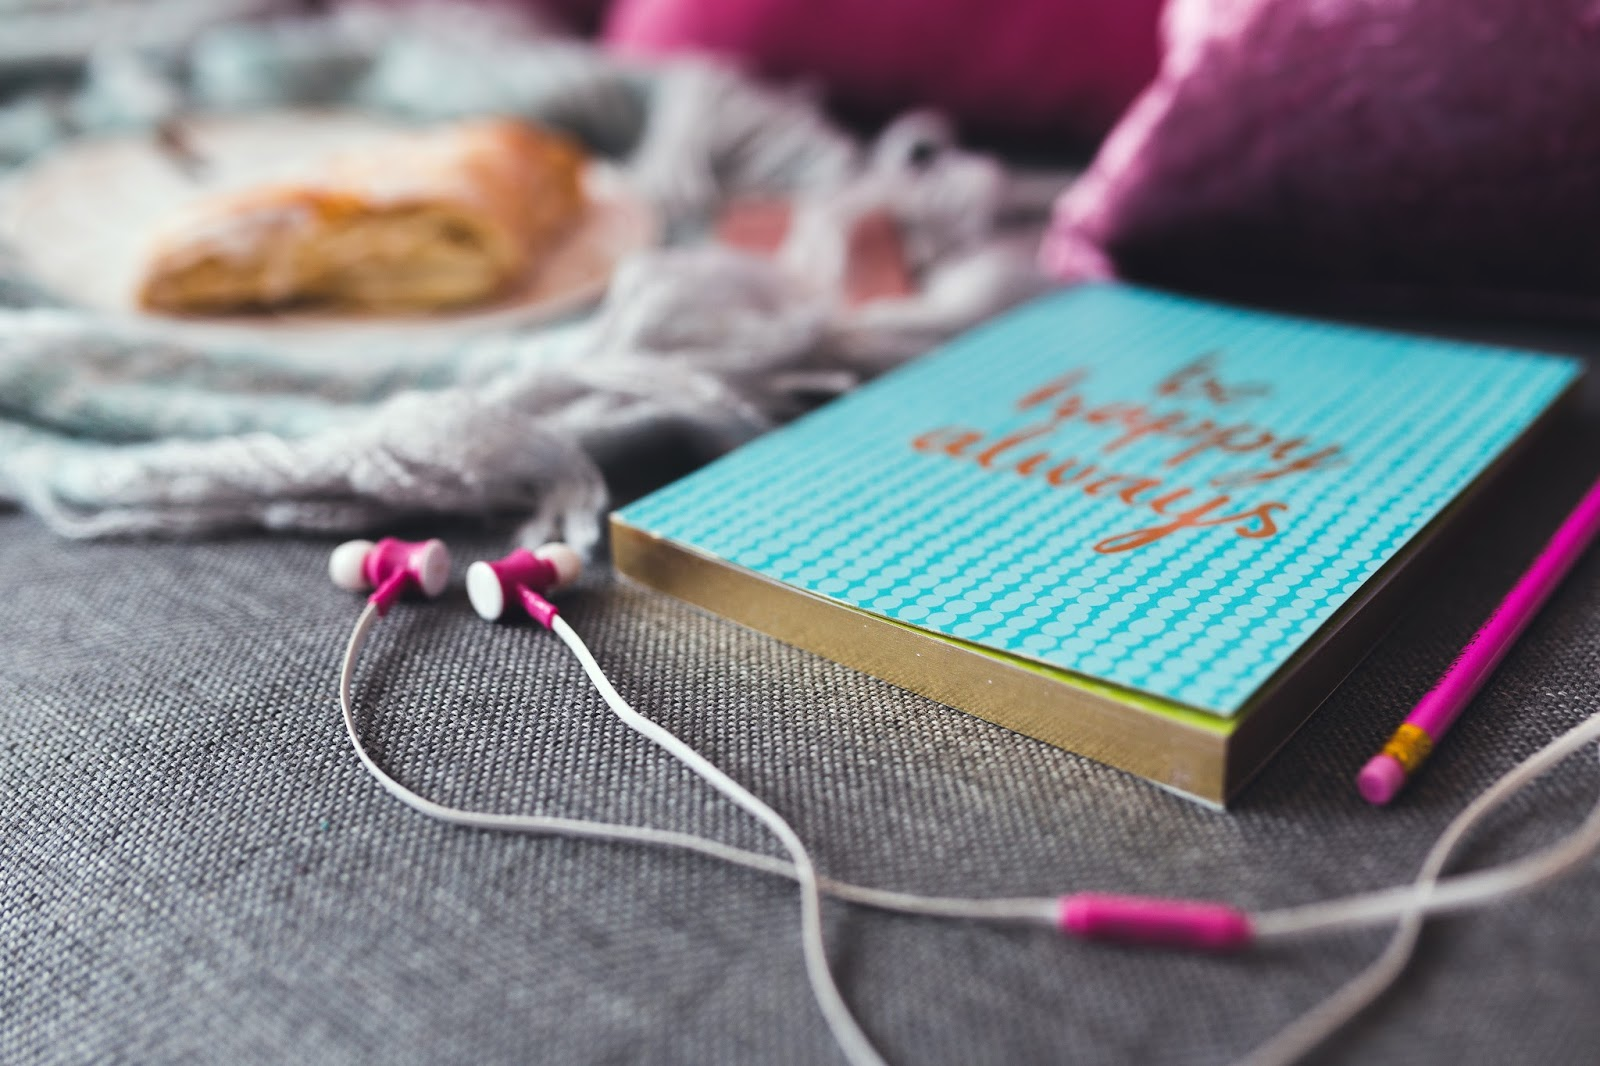 http://kaboompics.com/one_foto/1316/notebook-and-pink-earphones